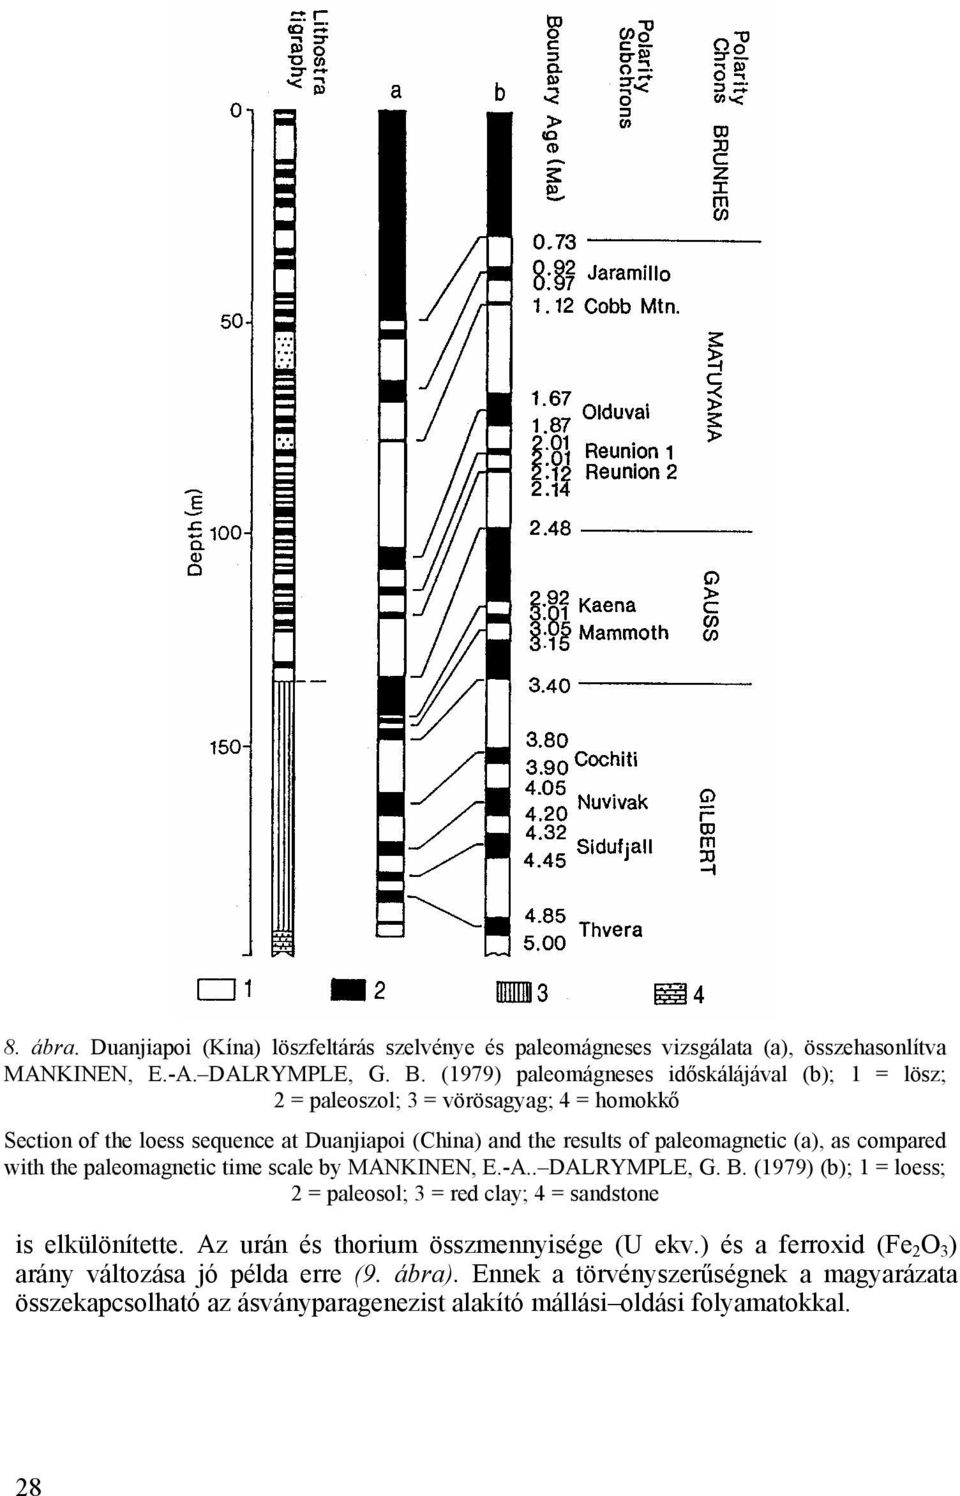 (a), as compared with the paleomagnetic time scale by MANKINEN, E.-A.. DALRYMPLE, G. B. (1979) (b); 1 = loess; 2 = paleosol; 3 = red clay; 4 = sandstone is elkülönítette.